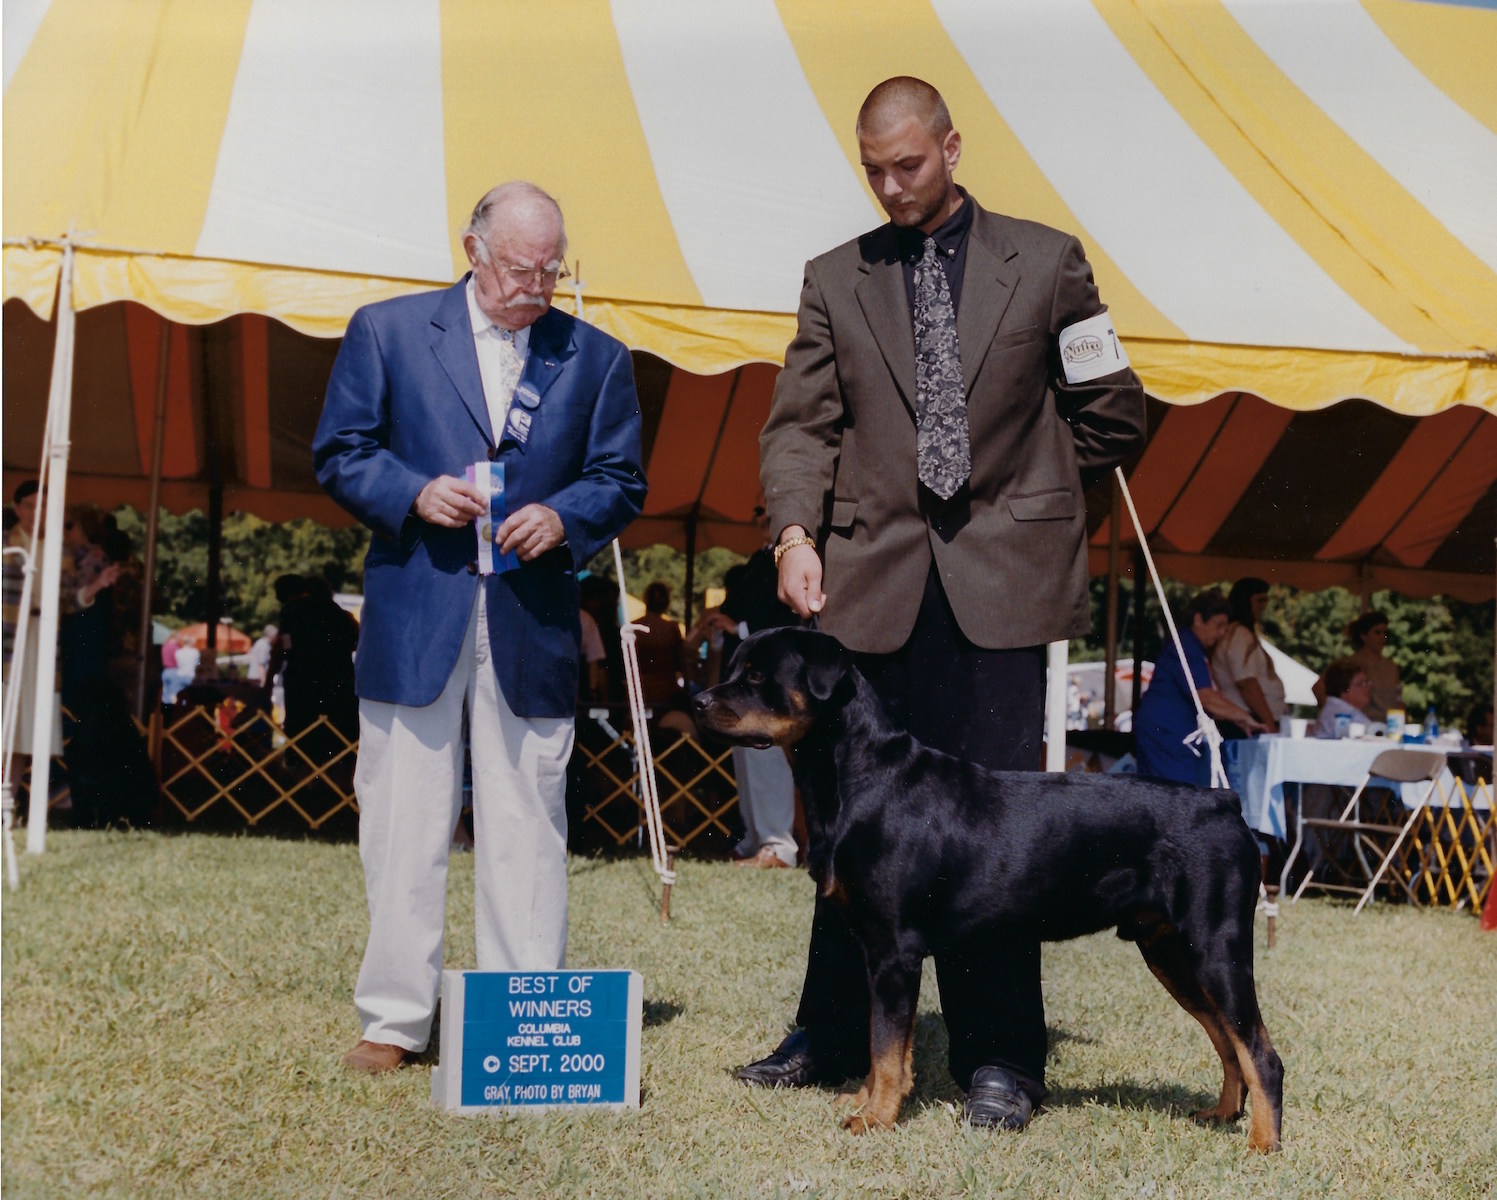 Marcus, Best of Winners, Columbia Kennel Club, Sept 2000, Gray, Photo by Bryan